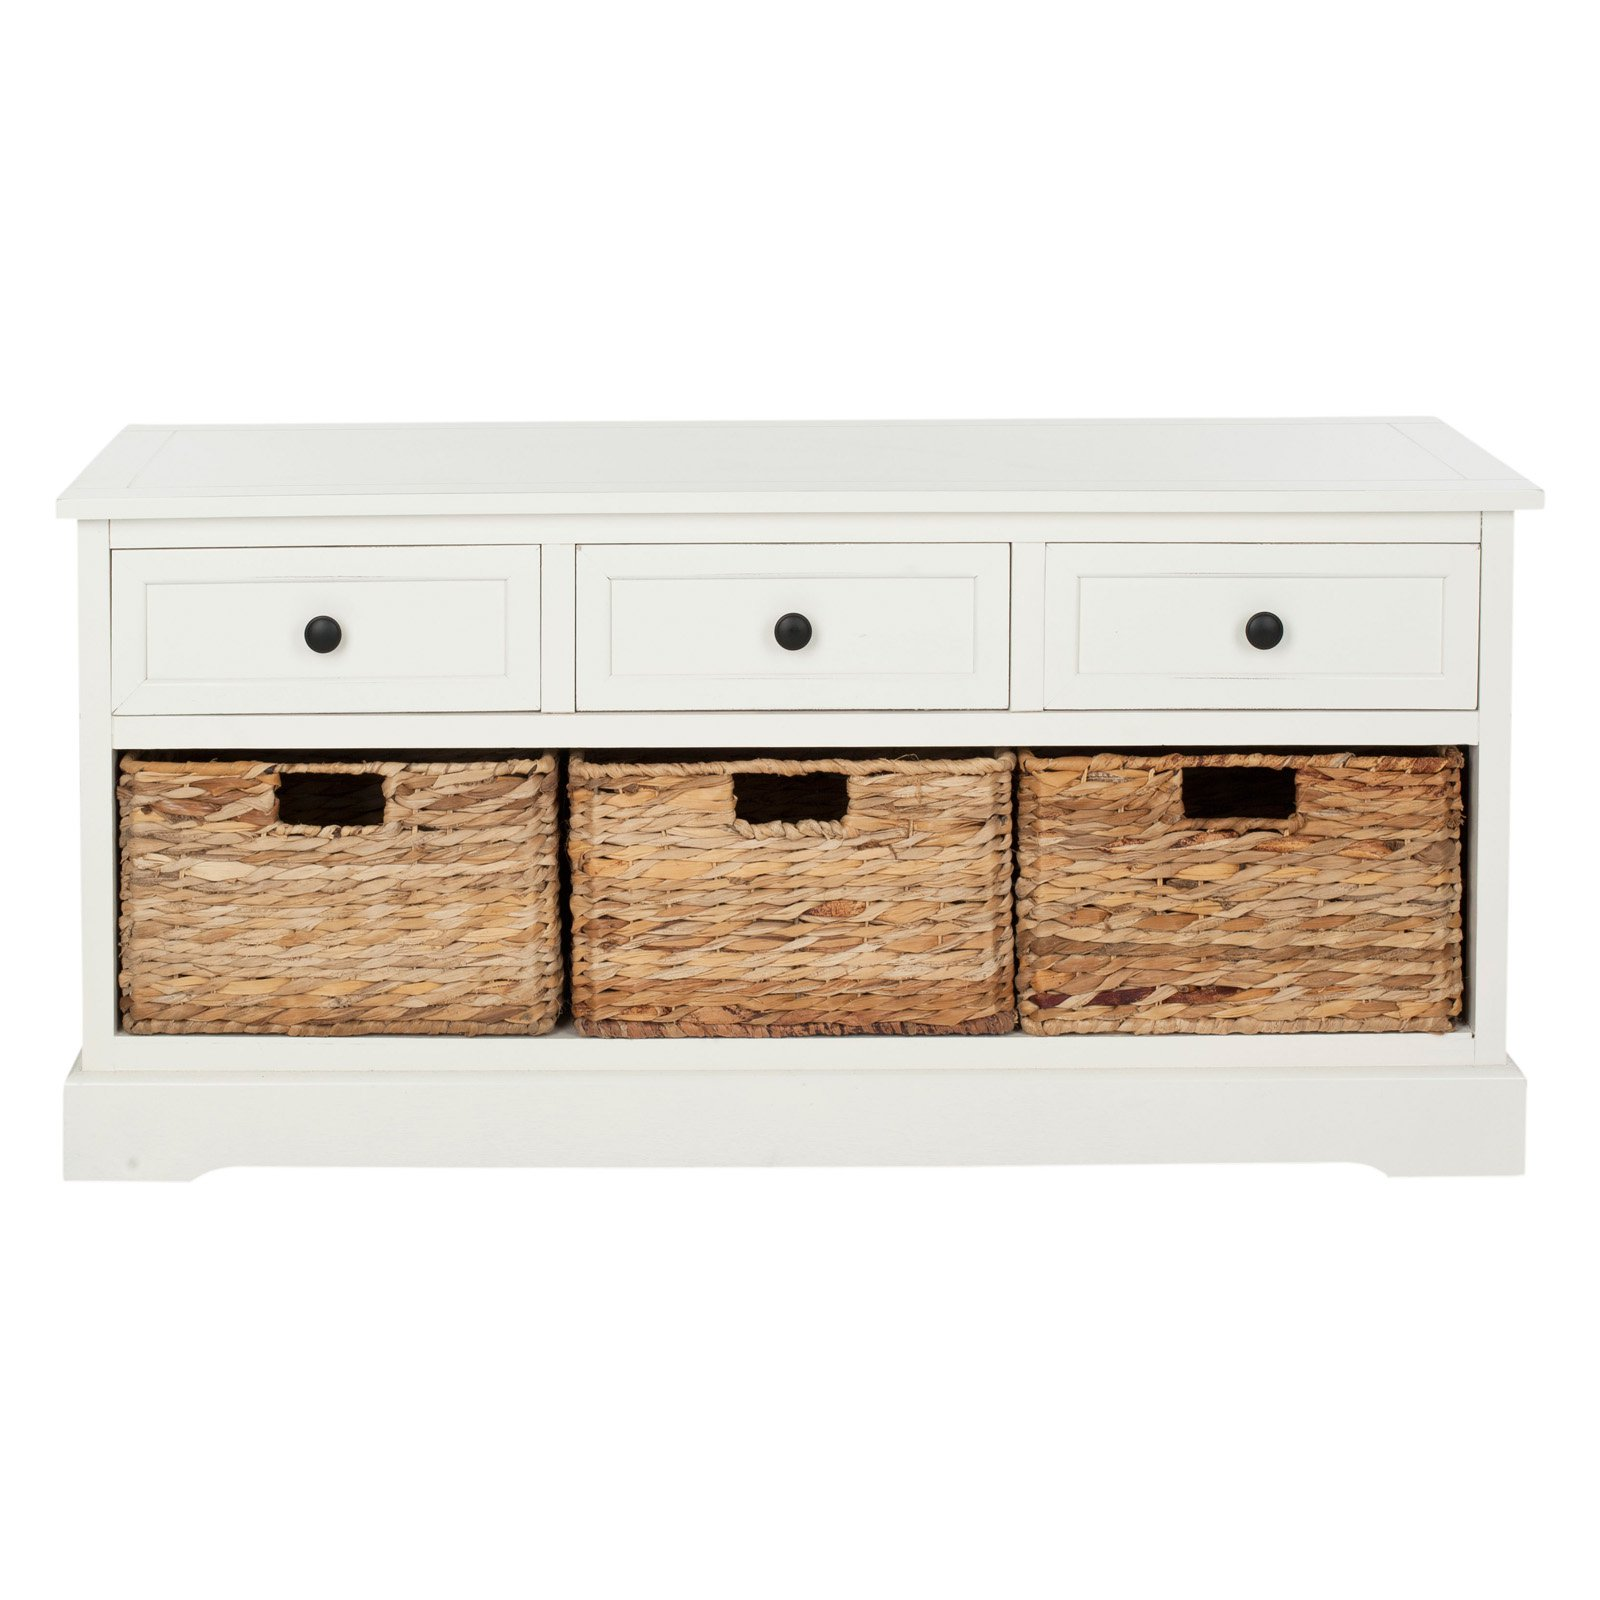 Safavieh Damien 3 Drawer Indoor Storage Bench